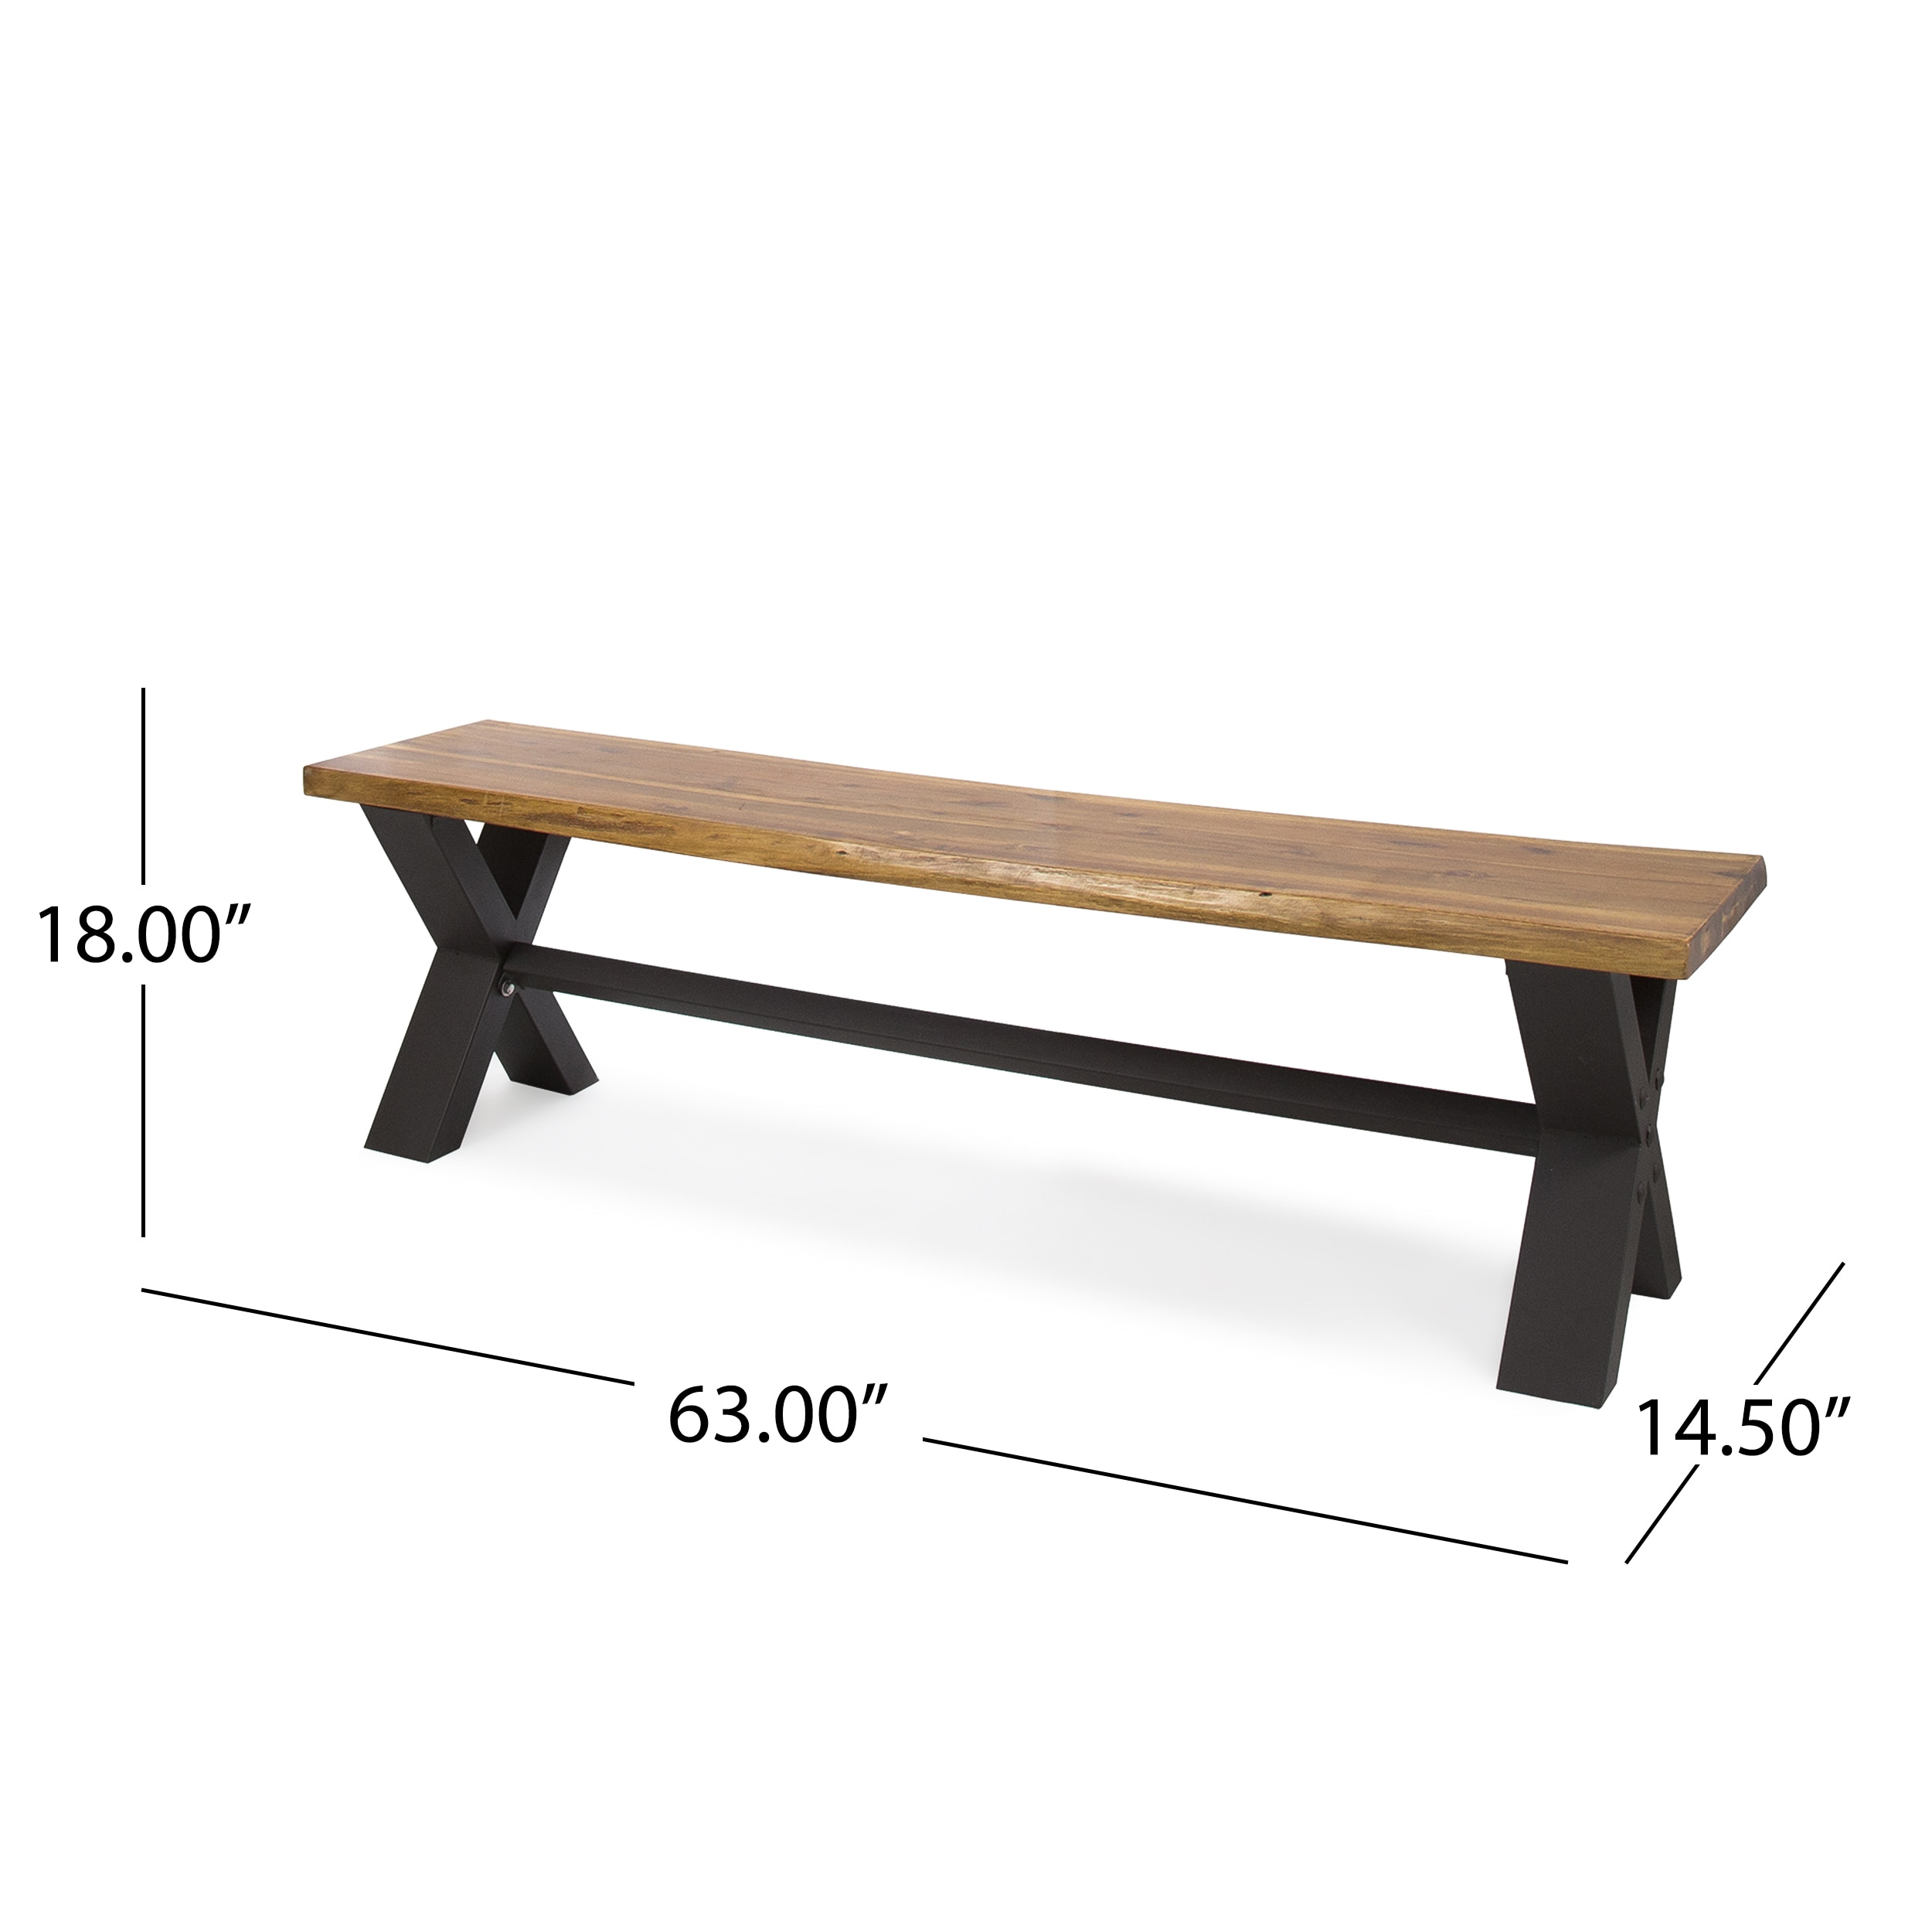 teak whitespace tanso irwin bench garden outdoor case products contemporary furniture david